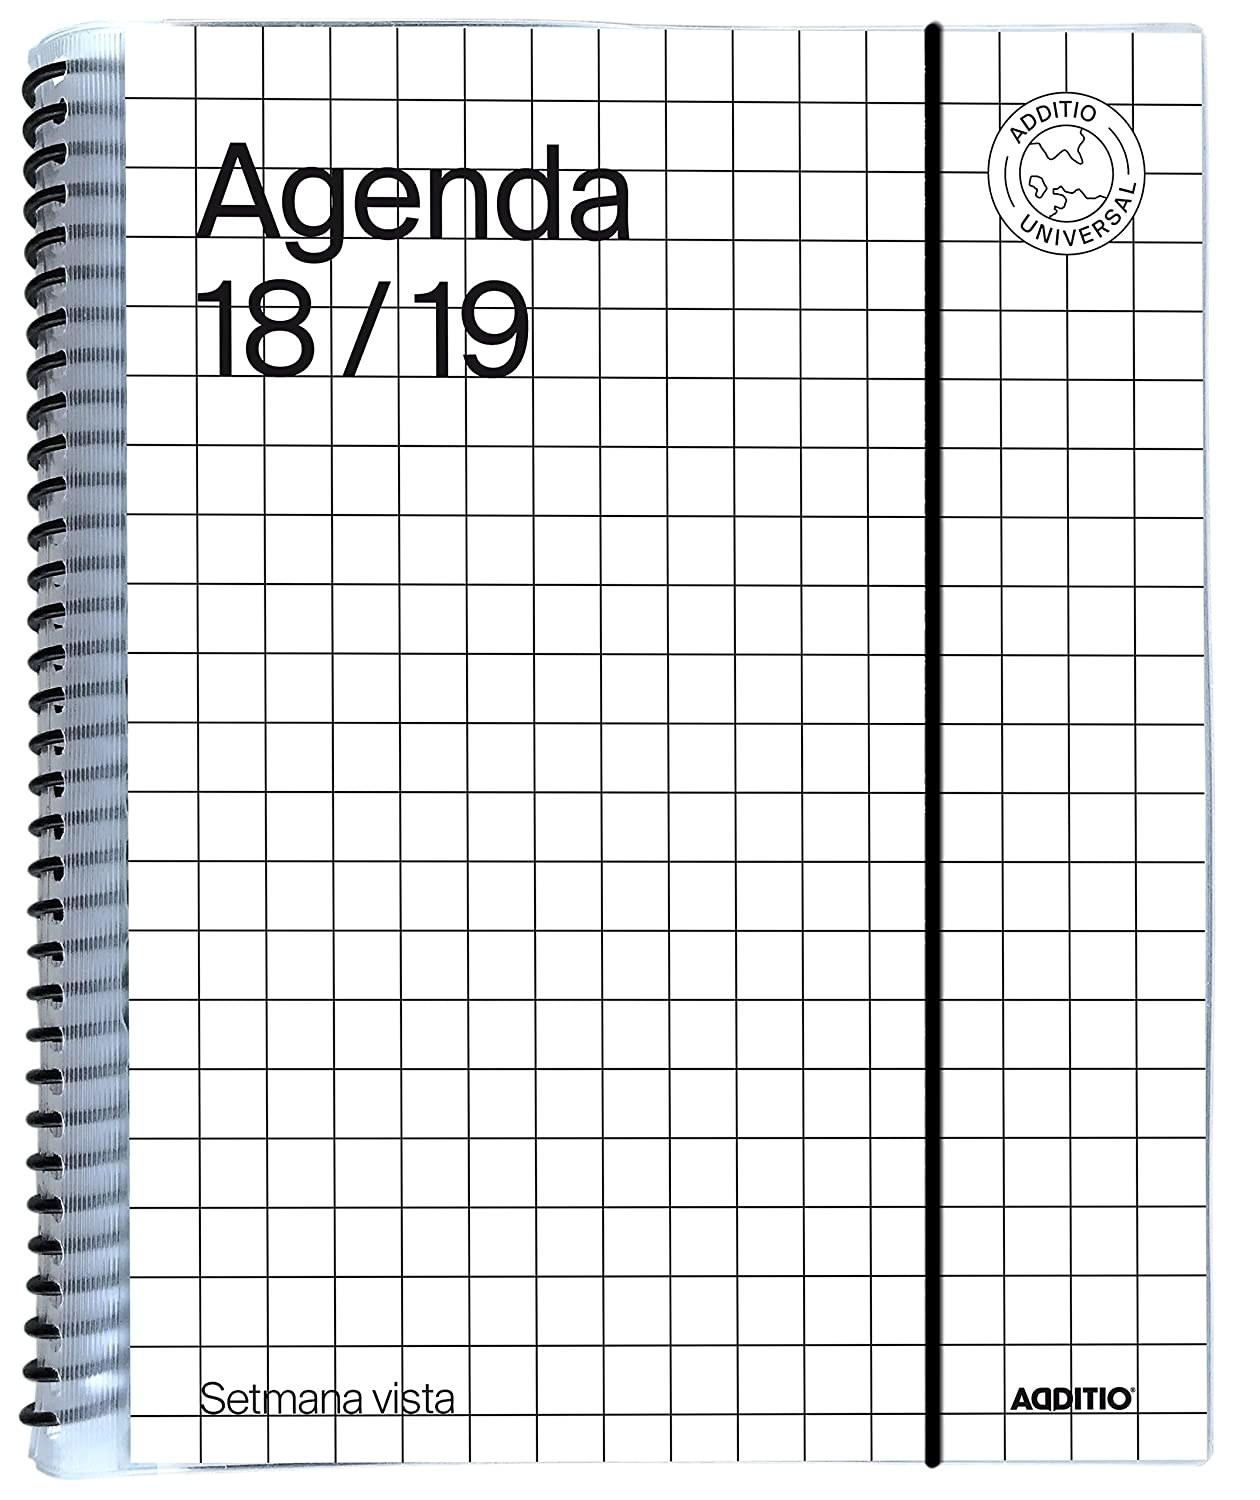 Additio A141-SV - Agenda Universal semana vista 2018-19 ...